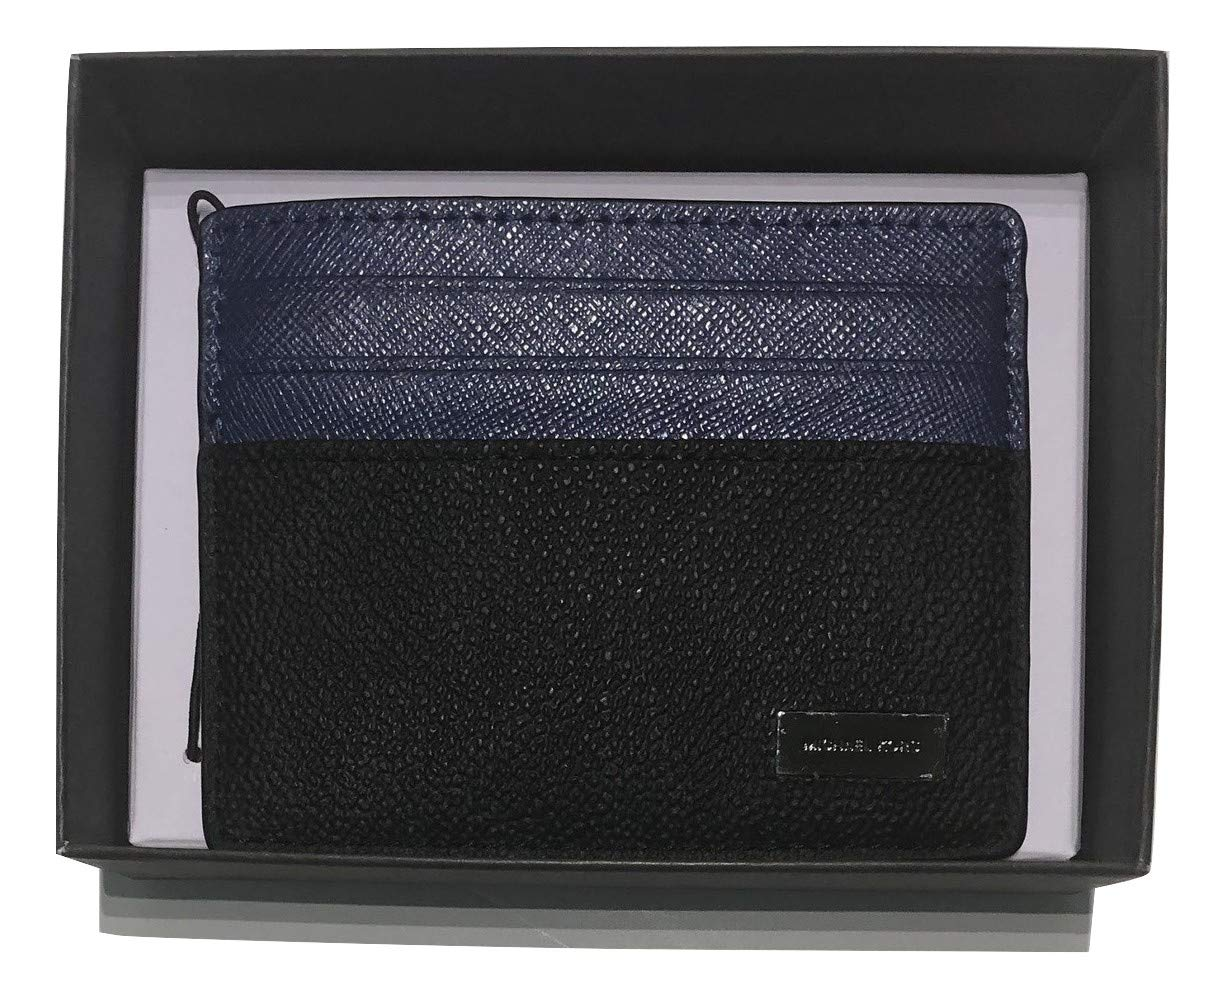 Michael Kors Jet Set Tall Card Holder Case (Ultramarine/Black)